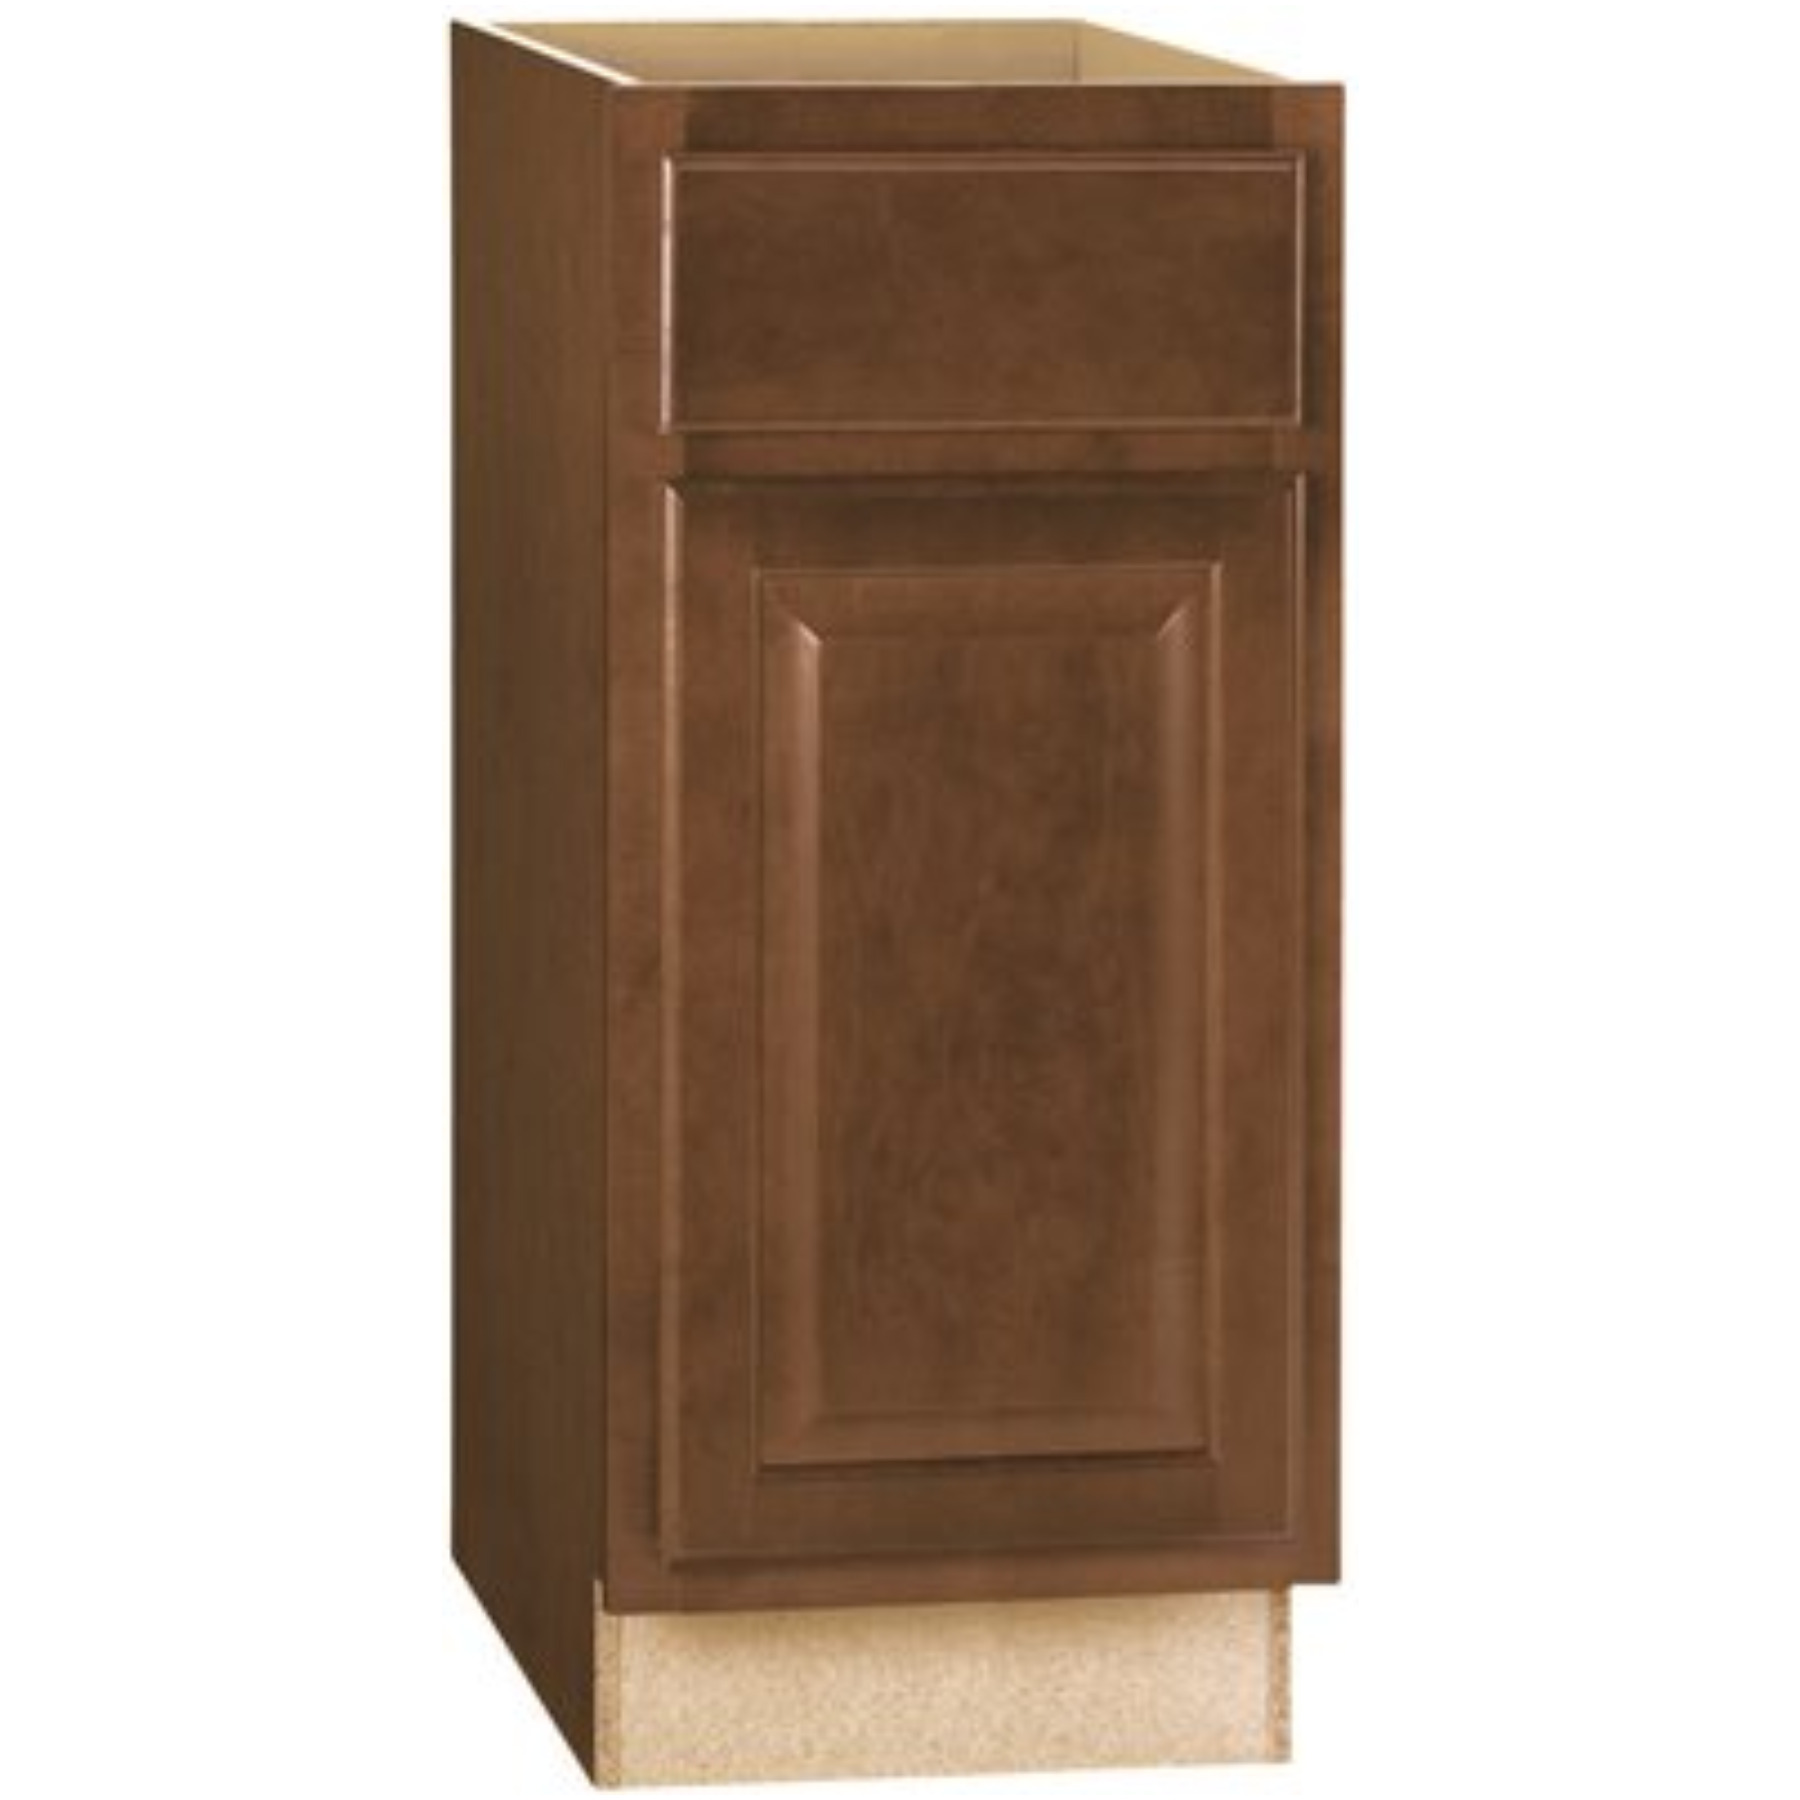 RSI HOME PRODUCTS HAMILTON BASE CABINET, FULLY ASSEMBLED, RAISED PANEL, CAFE, 15X34-1/2X24 IN.